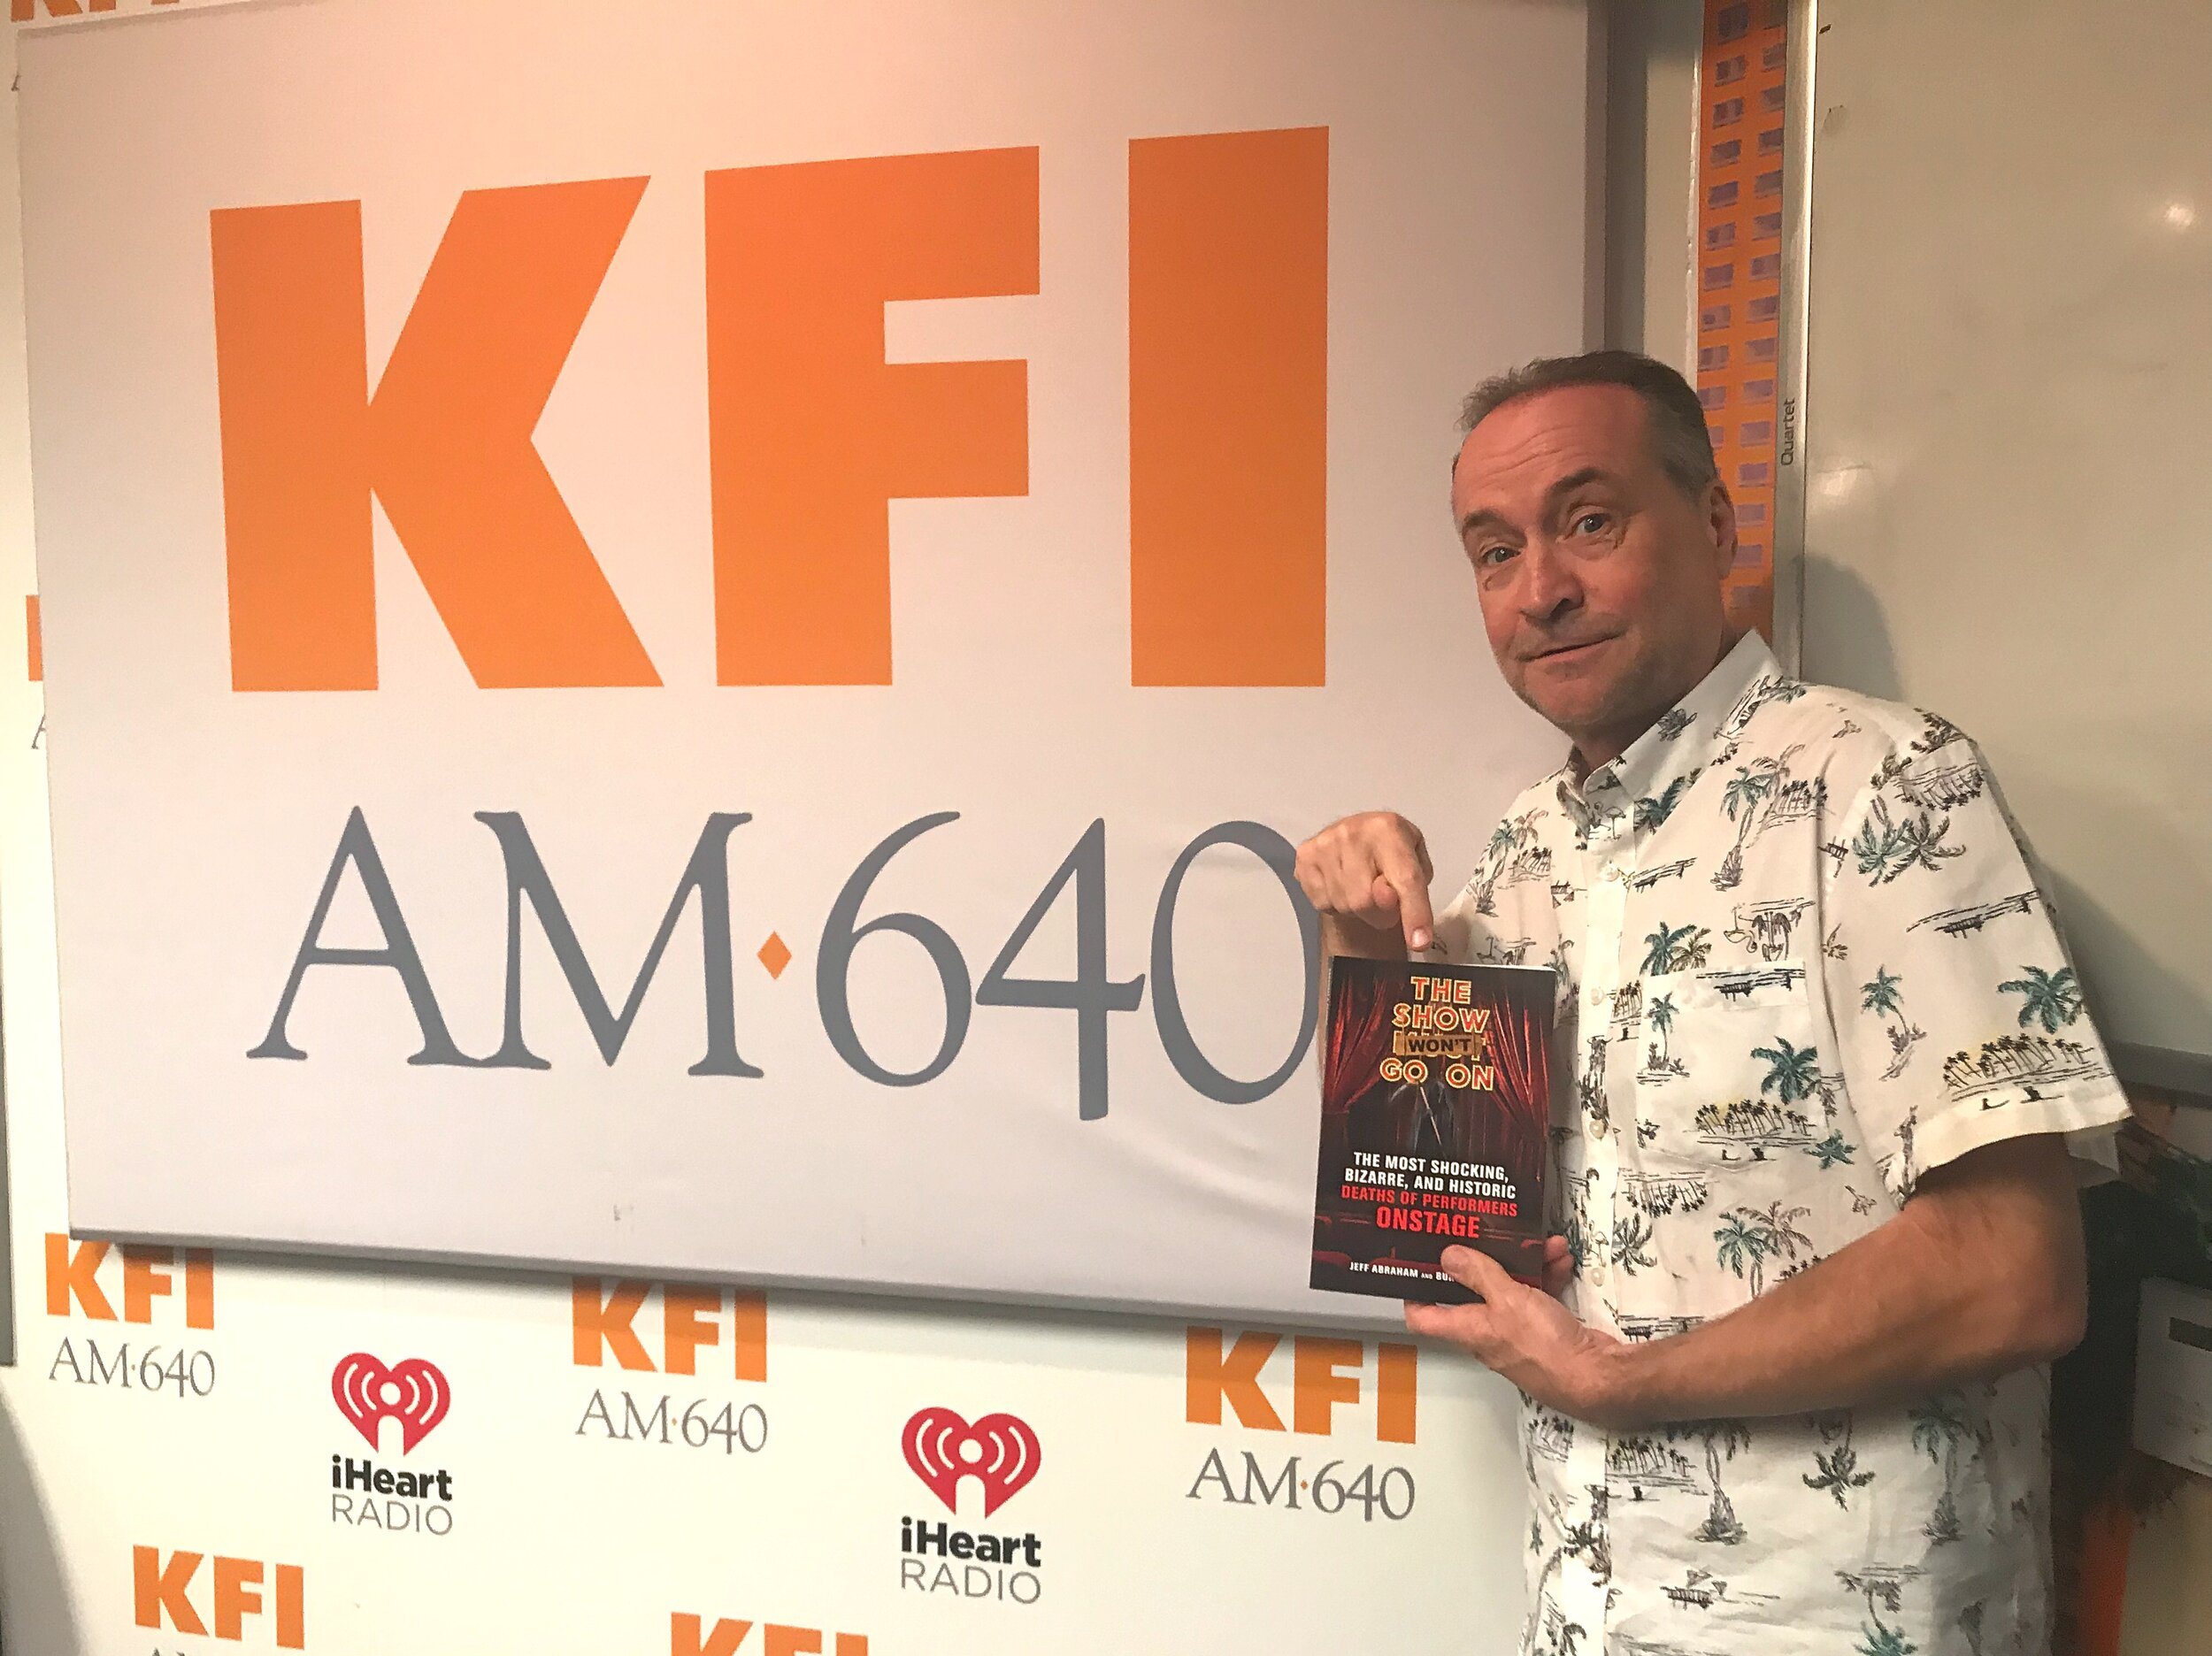 RADIO STAR TIM CONWAY JR., HOST OF  THE TIM CONWAY JR. SHOW  ON KFI-AM IN LOS ANGELES & iHEART RADIO, SHOWS OFF HIS COPY OF  THE SHOW WON'T GO ON  AFTER HIS INTERVIEW WITH THE BOOK'S AUTHORS.